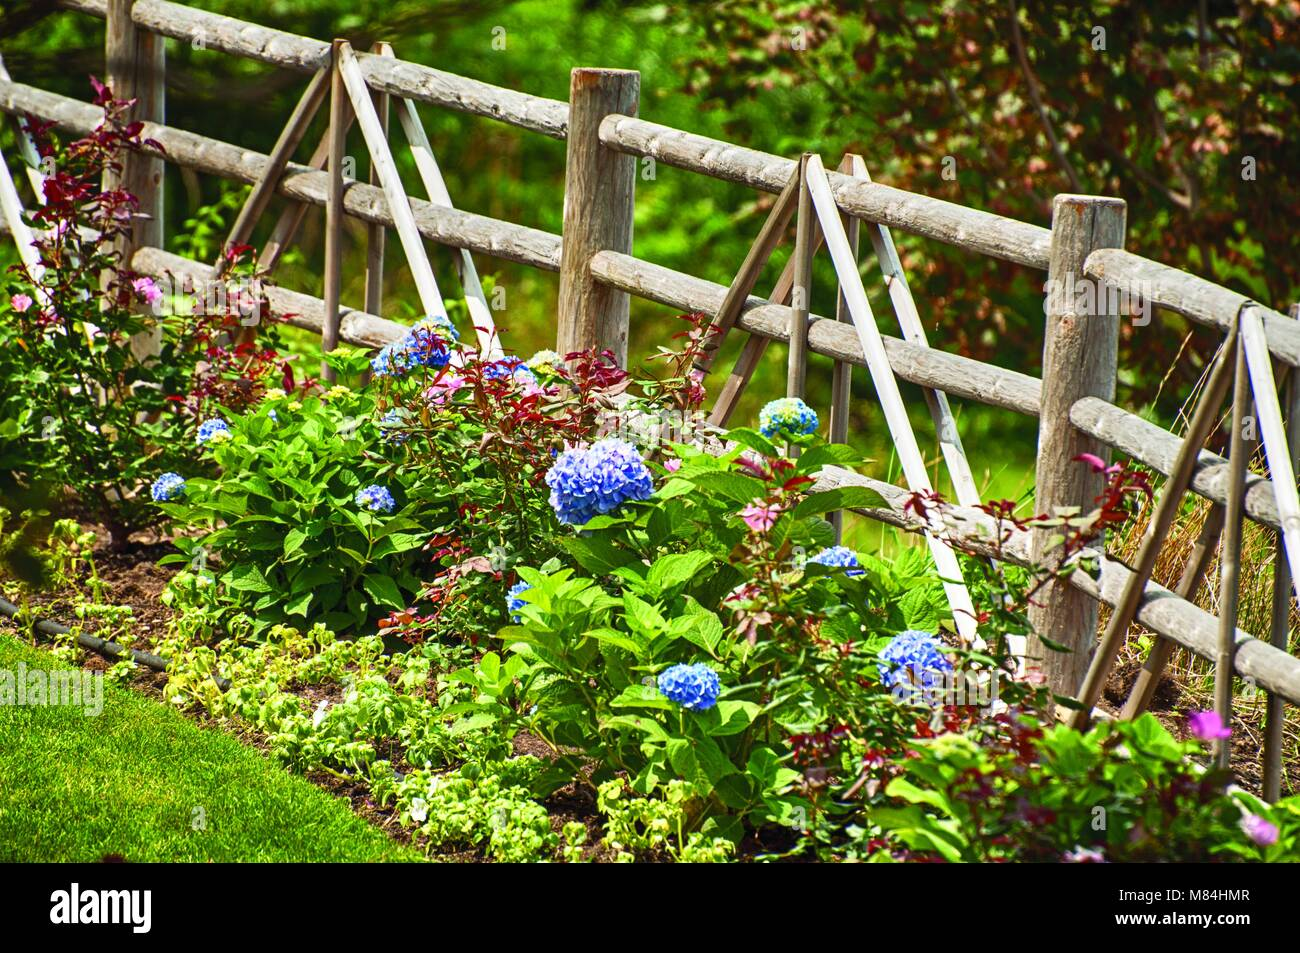 Very Pretty Flowers And Plants With A Wooden Fence To Contain The